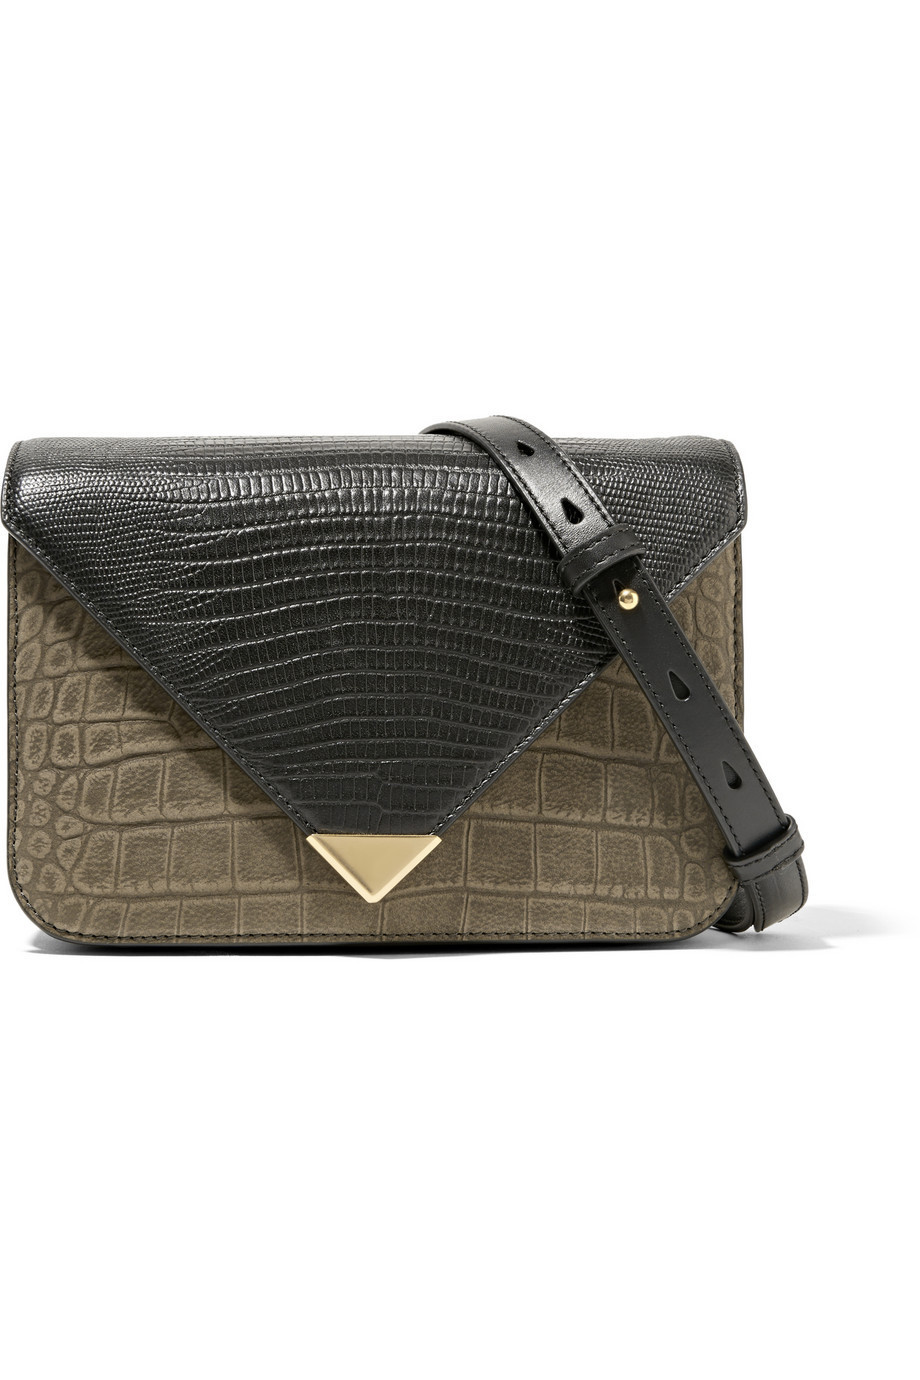 1f9a8cc8d6 Alexander Wang Prisma Small Croc and Lizard-Effect Leather Shoulder Bag in  black   green